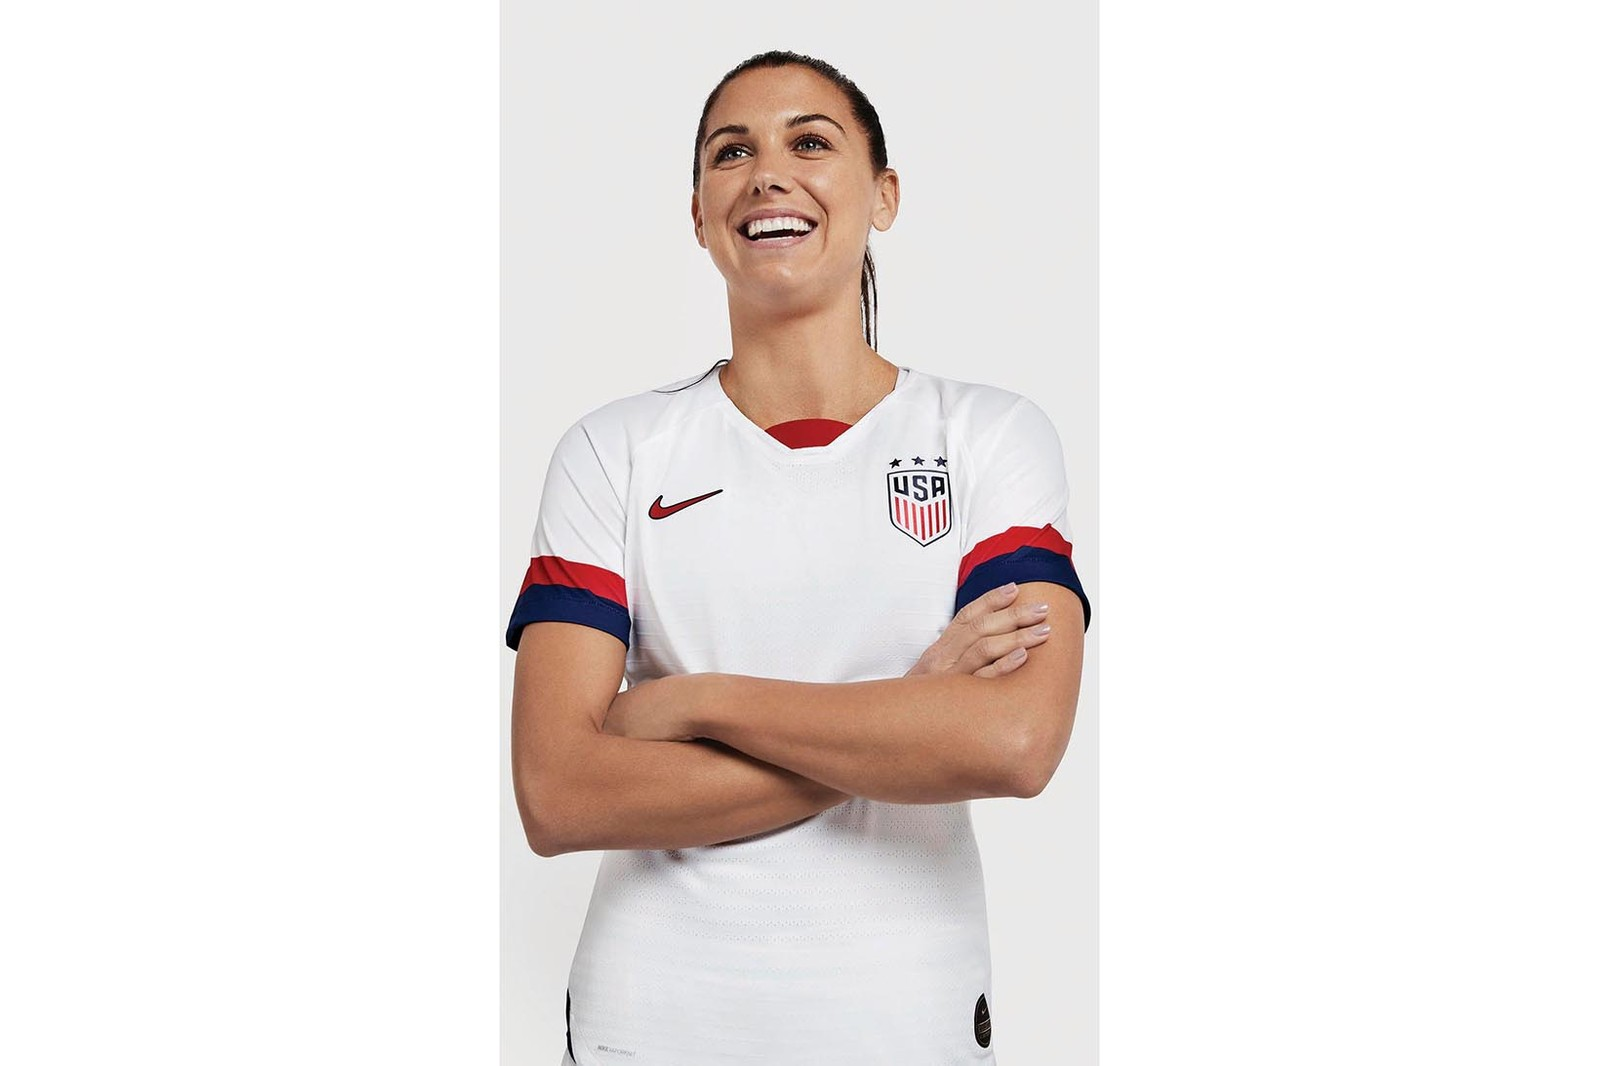 Alex Morgan US Women's Soccer Football World Cup France 2019 Gender Discrimination Lawsuit Interview Nike